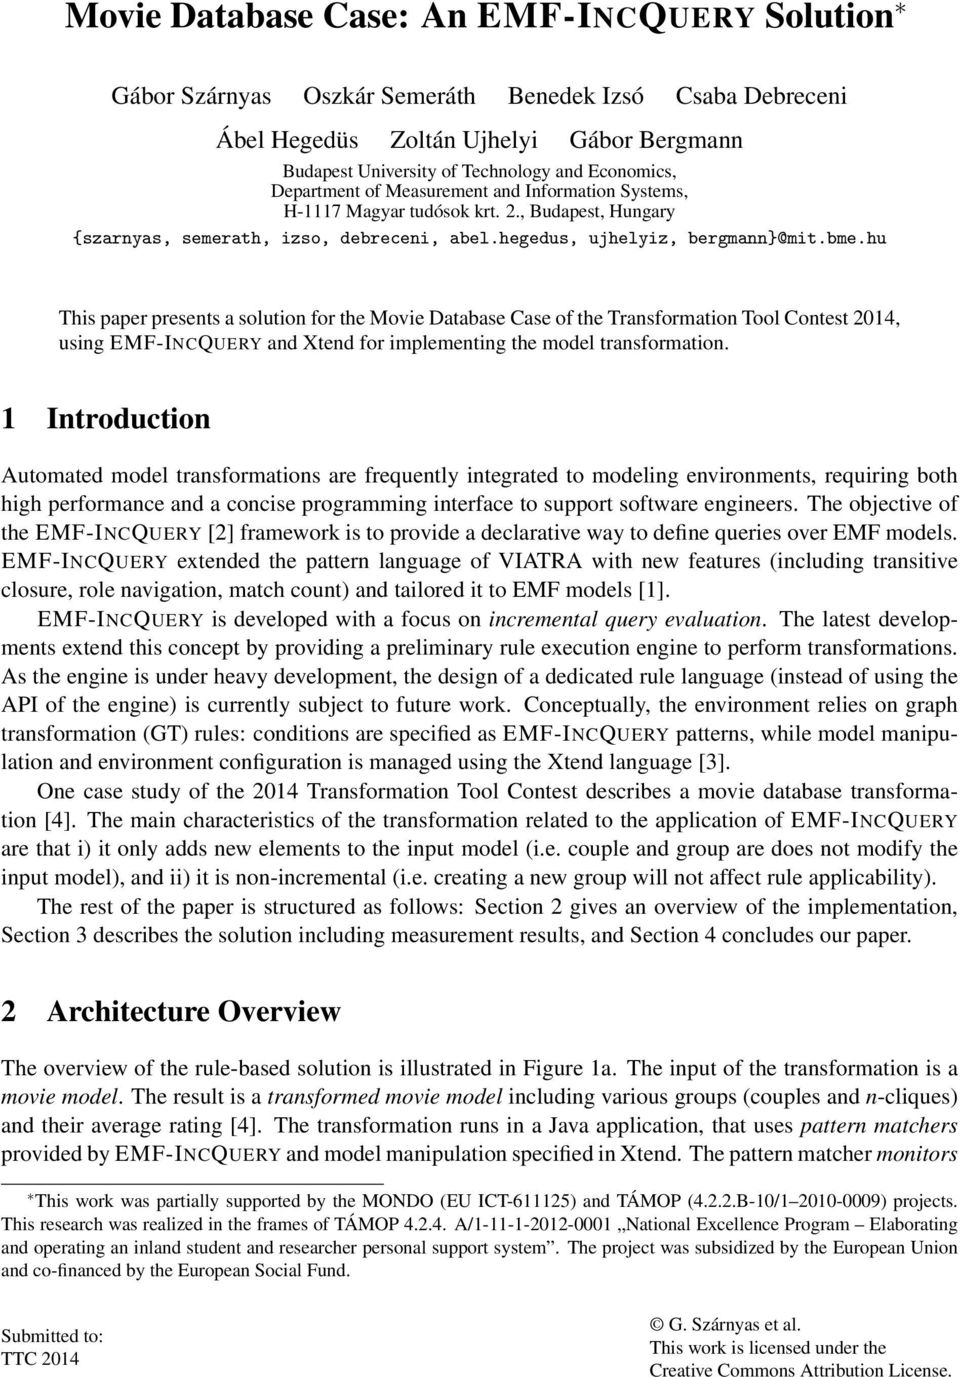 hu This paper presents a solution for the Movie Database Case of the Transformation Tool Contest 2014, using EMF-INCQUERY and Xtend for implementing the model transformation.